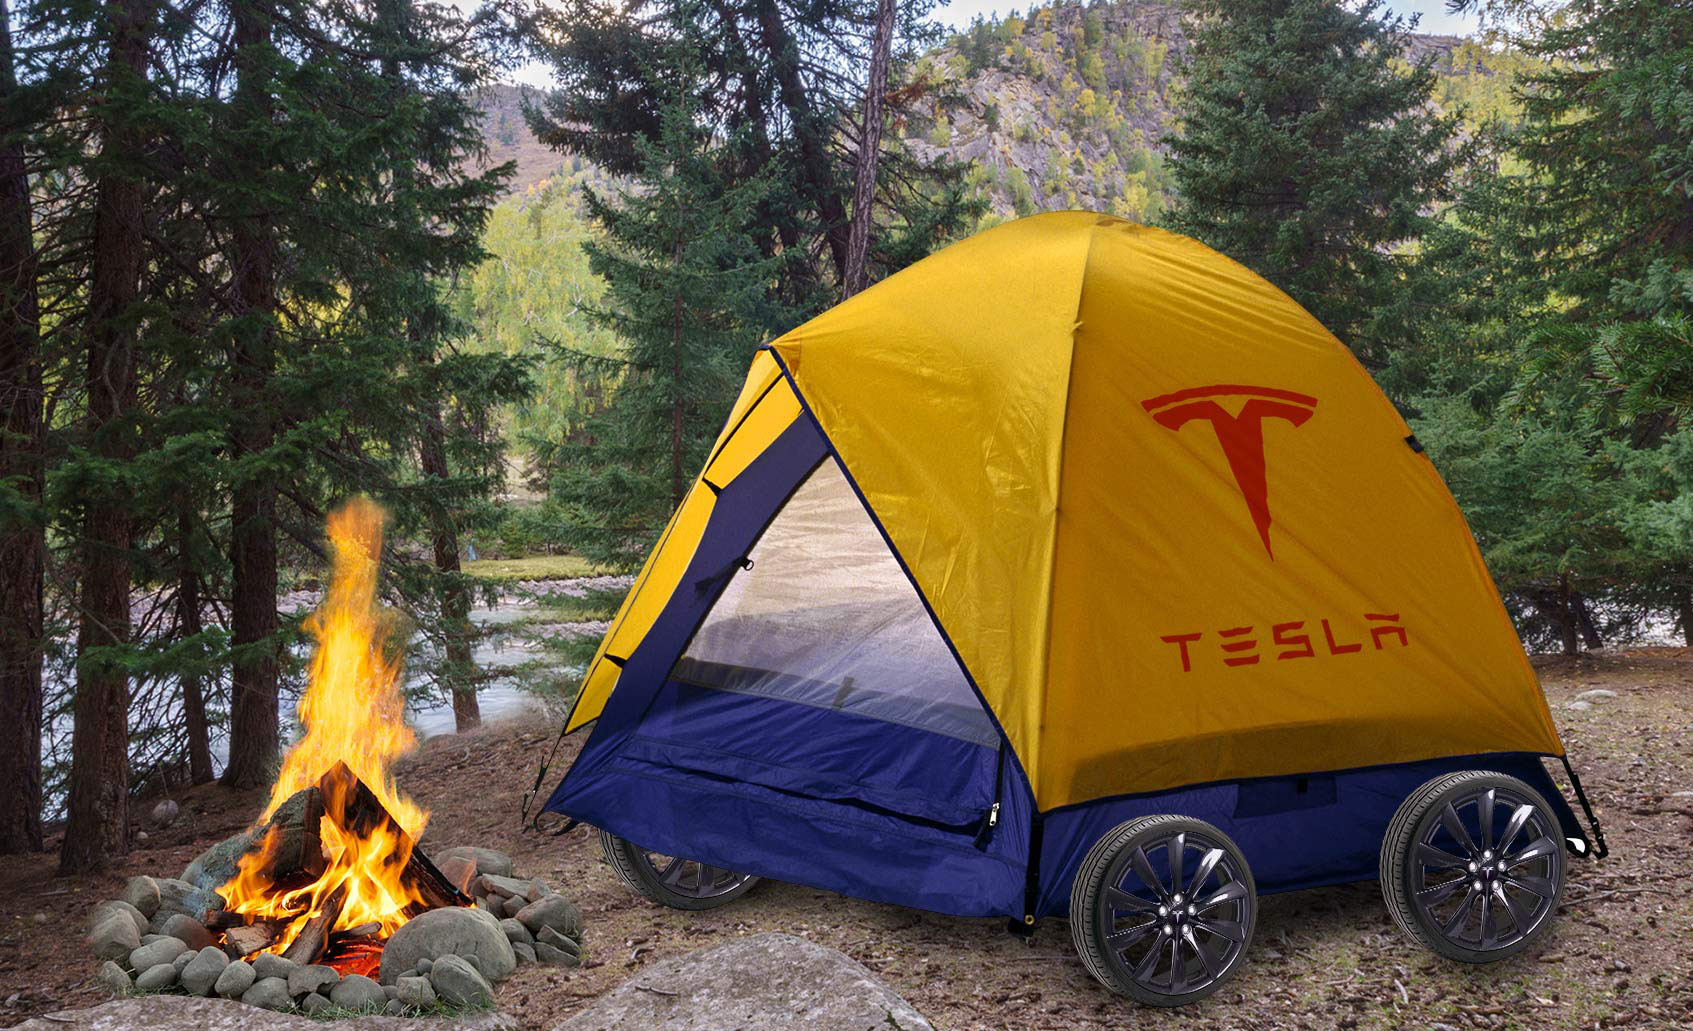 I Went Camping in the Trunk of a $145,000 Tesla